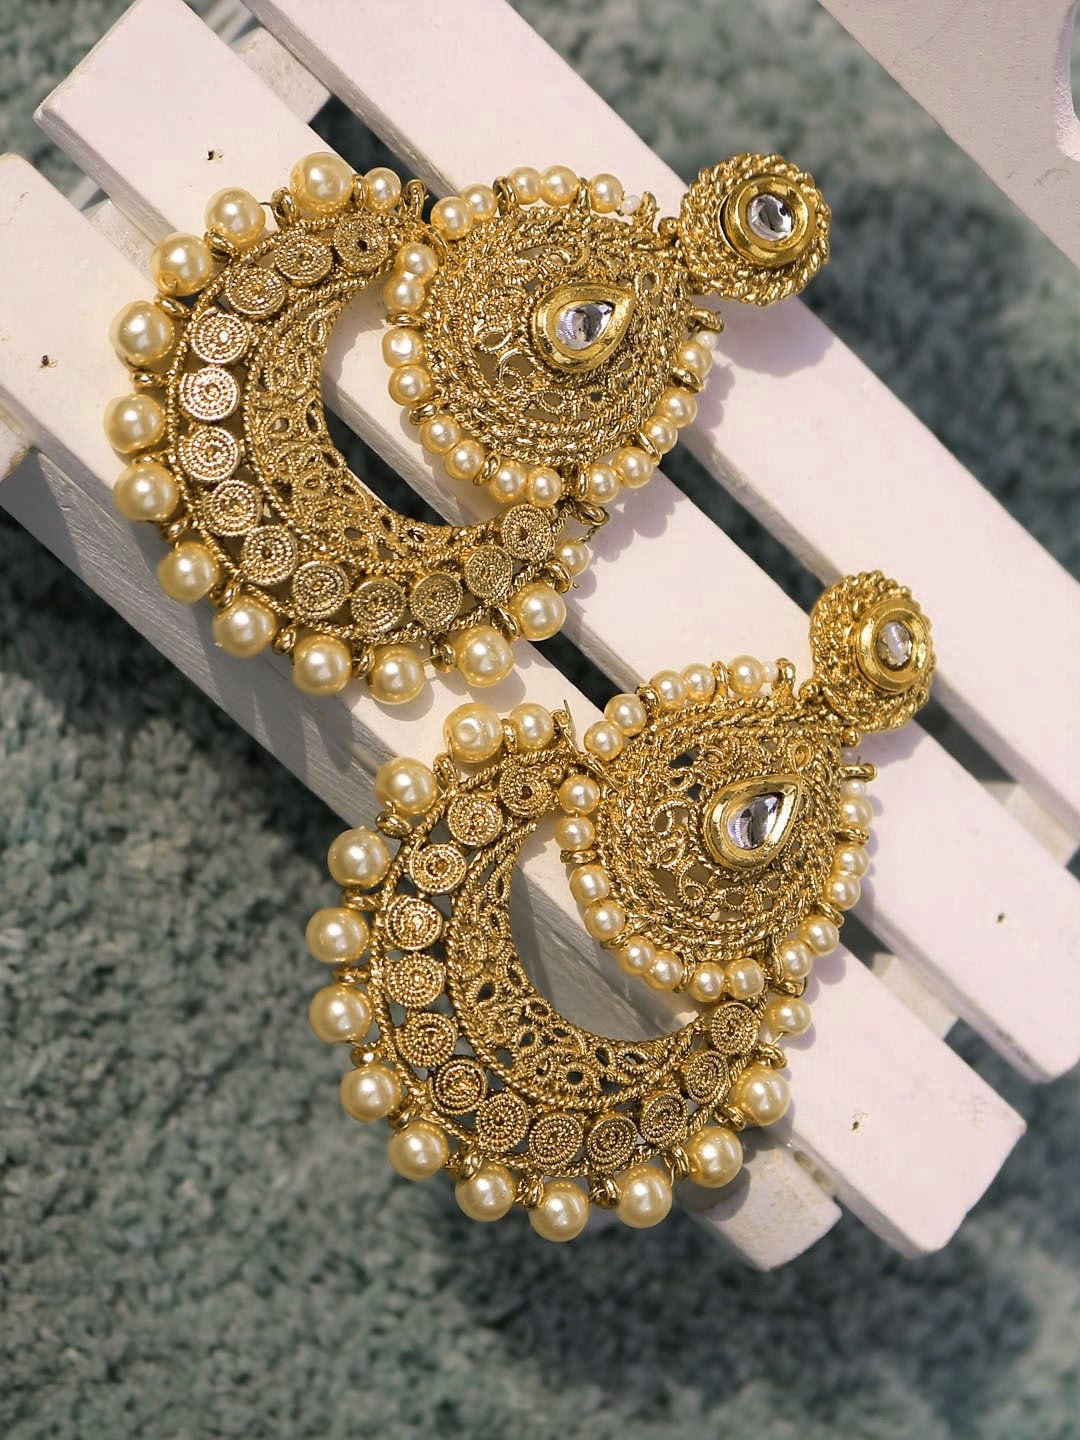 1a8bf8727 Earrings Gold Plated Jewellery Set Earring Pendant - Buy Earrings Gold  Plated Jewellery Set Earring Pendant online in India